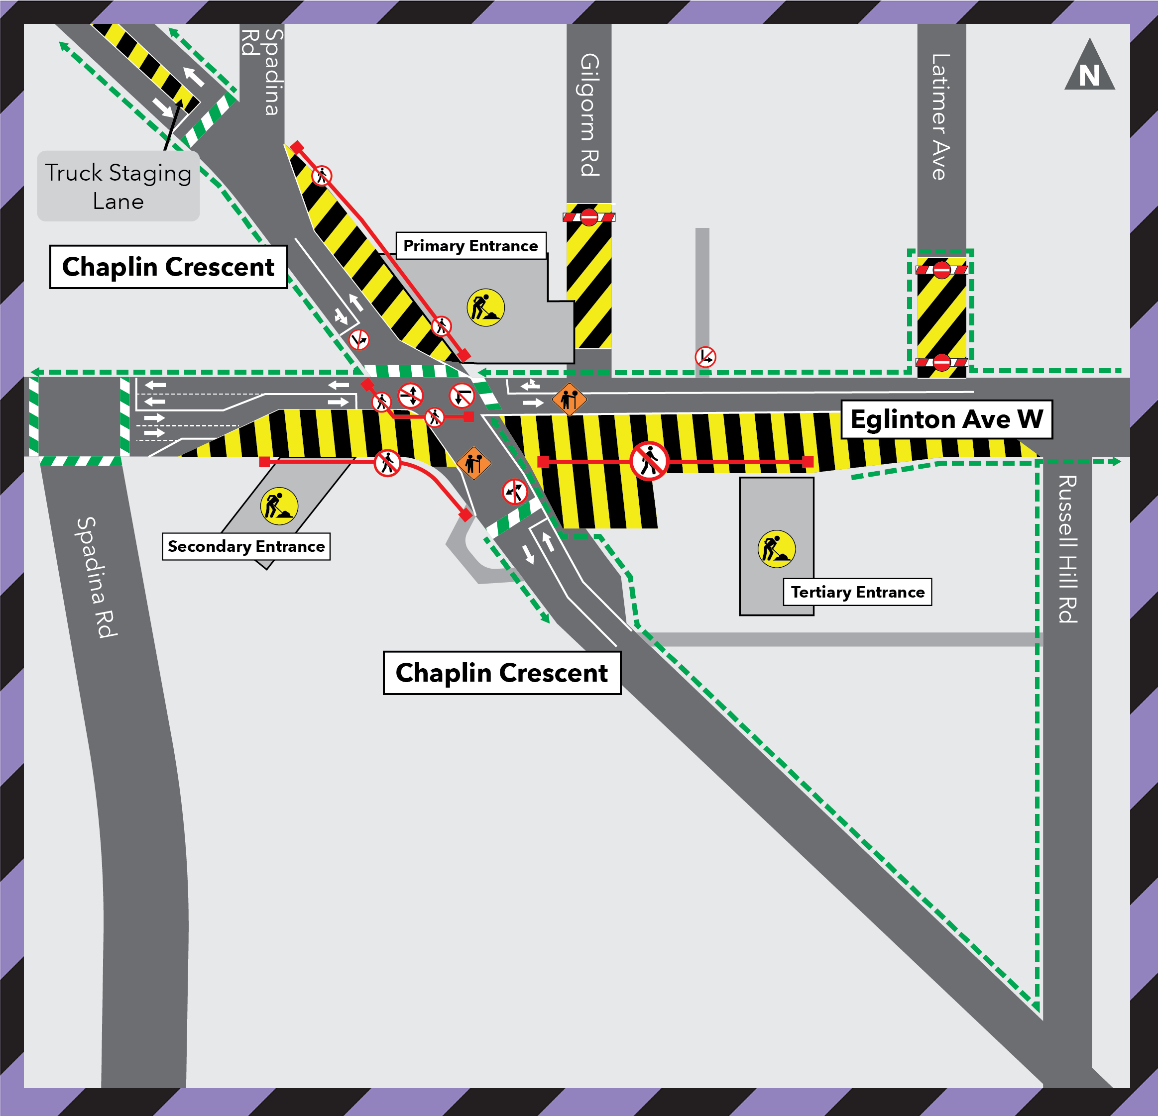 Overnight Utility Works at Eglinton Avenue West and Chaplin Crescent